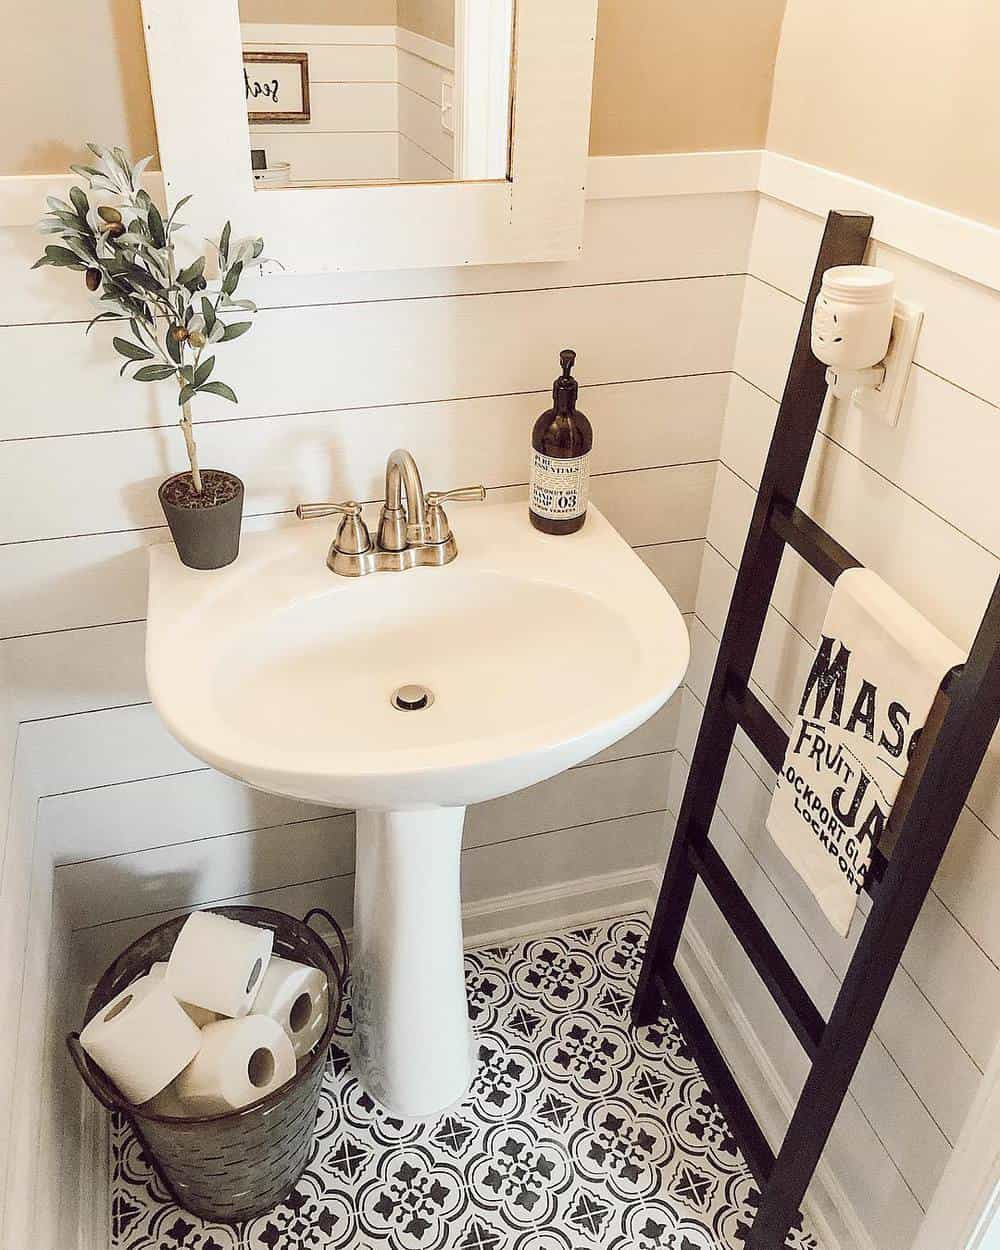 What Tiles Should You Have For Your Bathroom - Wainscoting for Bathroom Walls